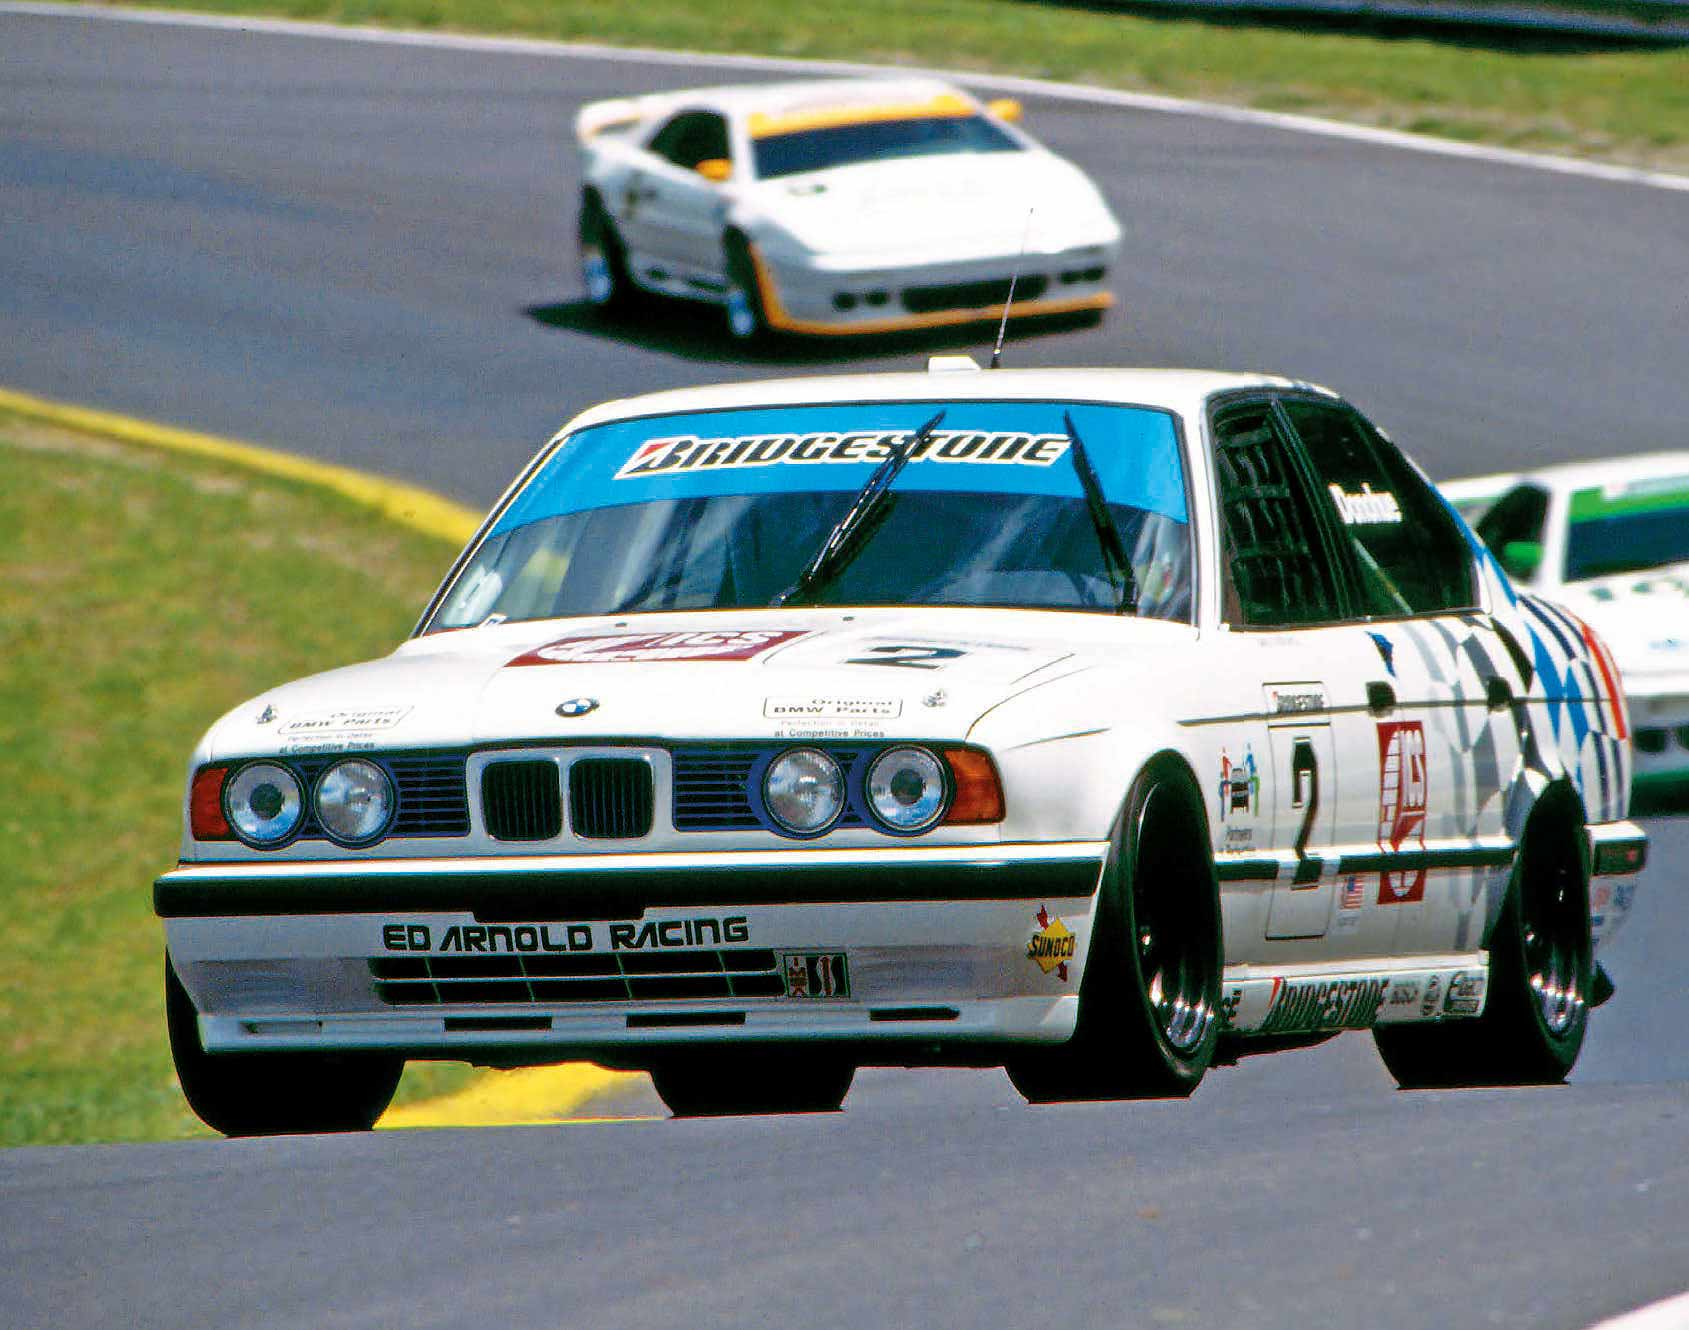 Colorful Bmw Racing Cars For Sale Component Classic Cars